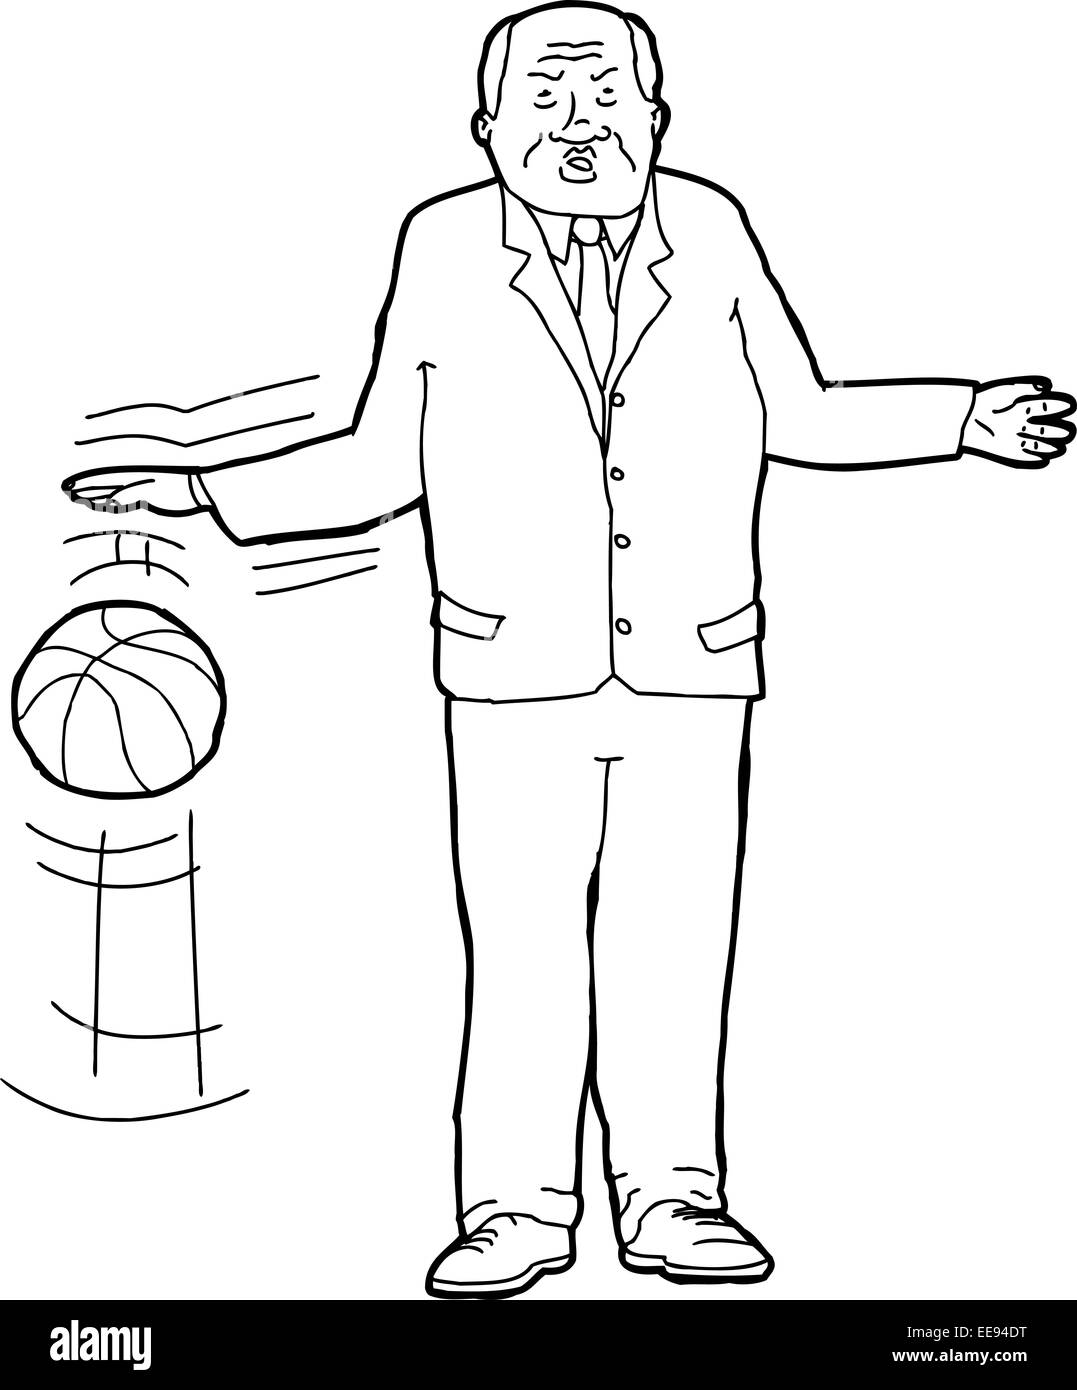 Cartoon outline of tough businessman bouncing basketball - Stock Image